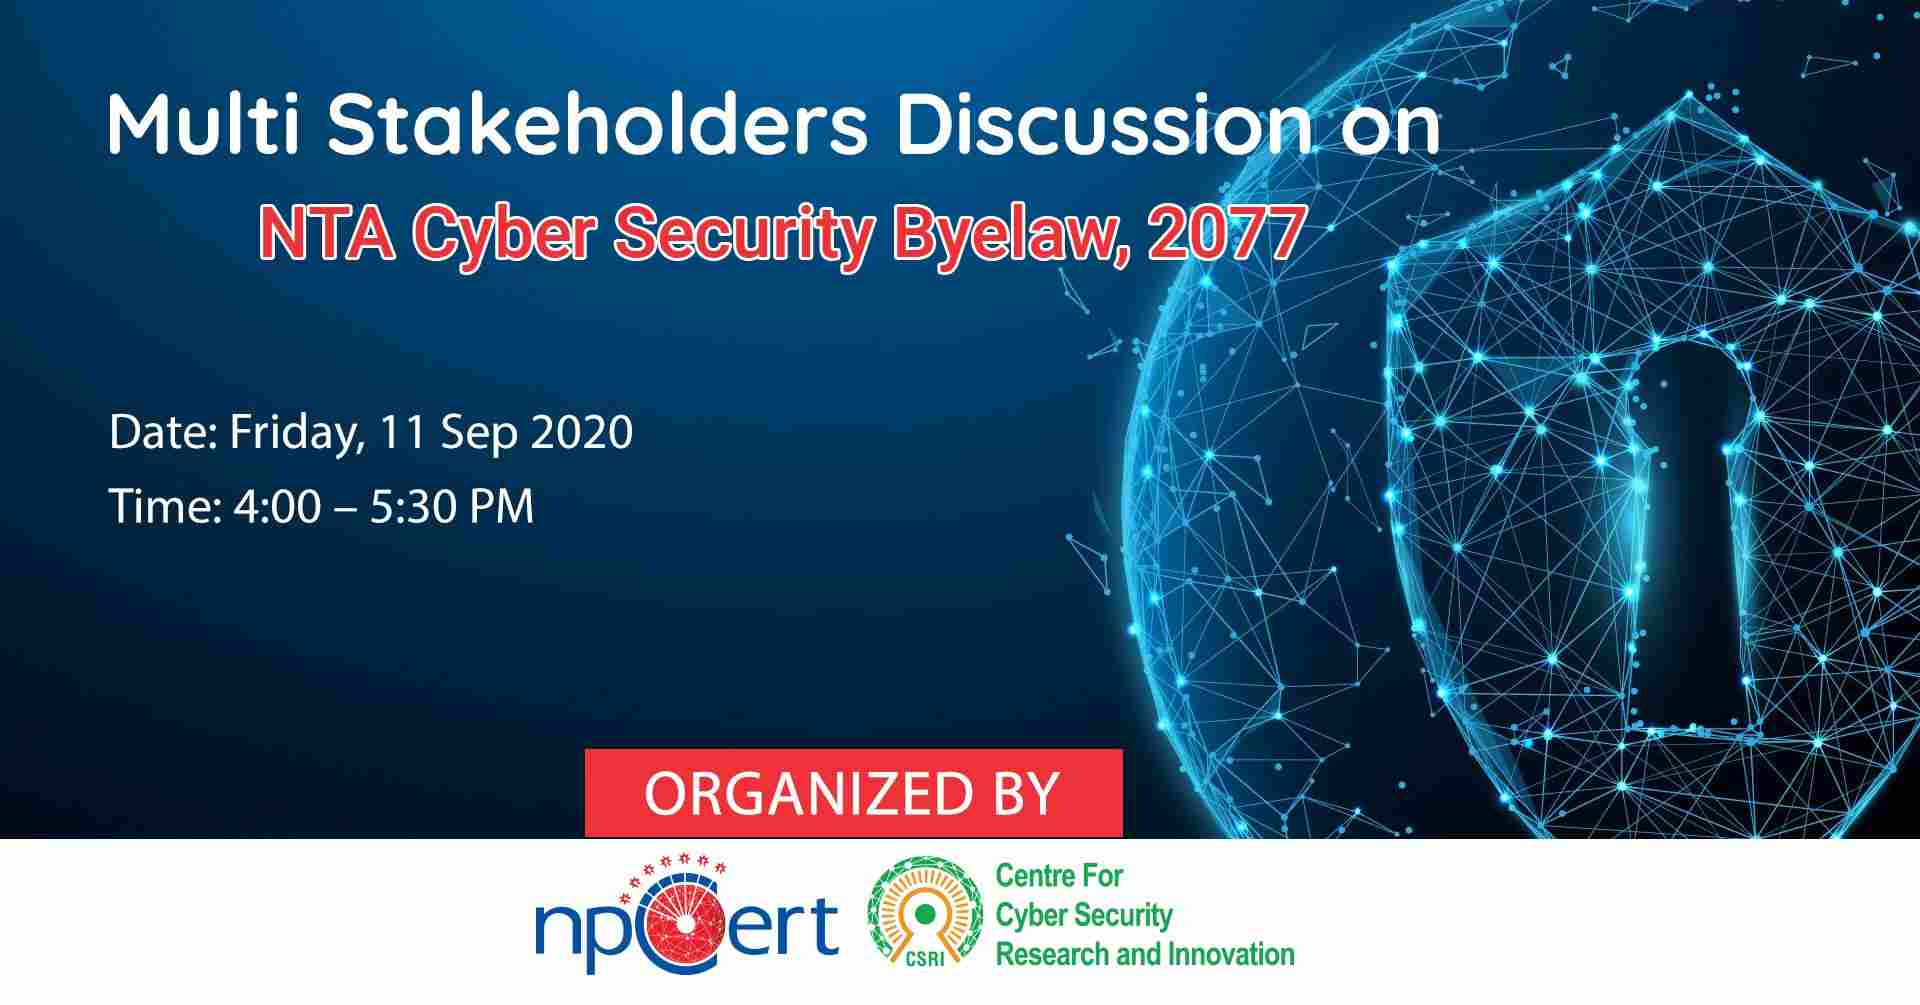 NTA Cyber Security Byelaw, 2077